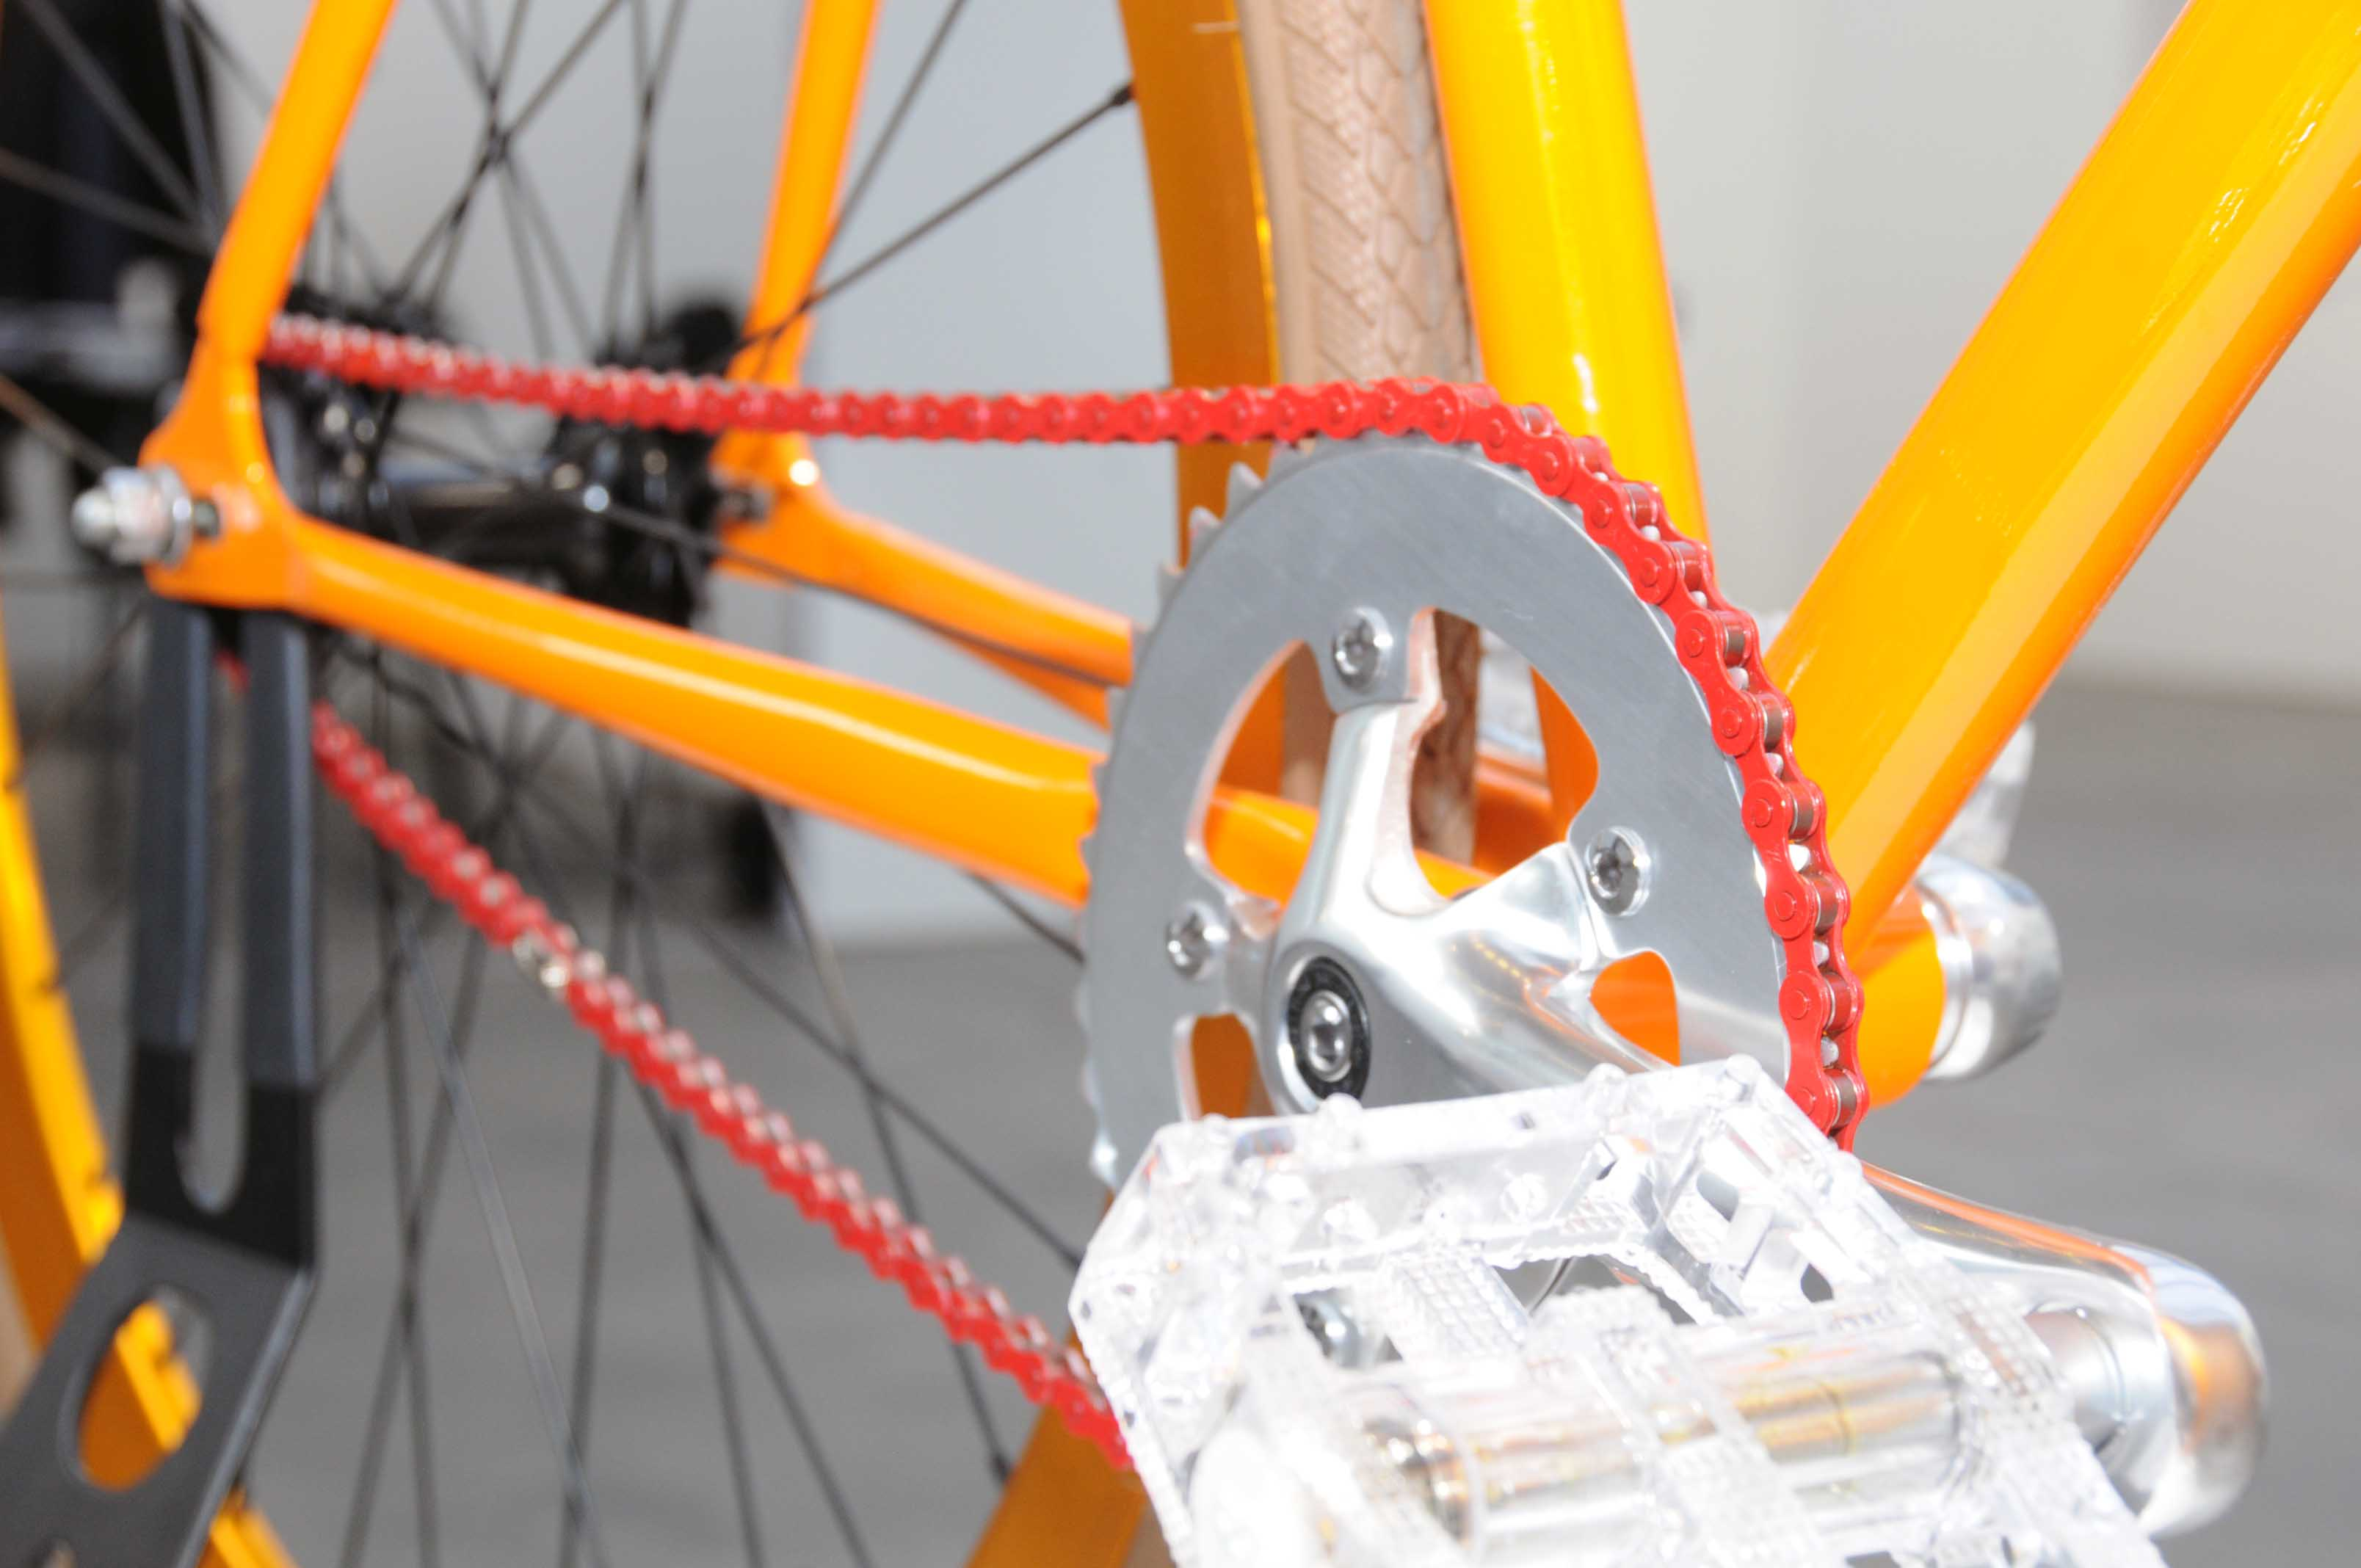 Details from Martone Bicycling co.